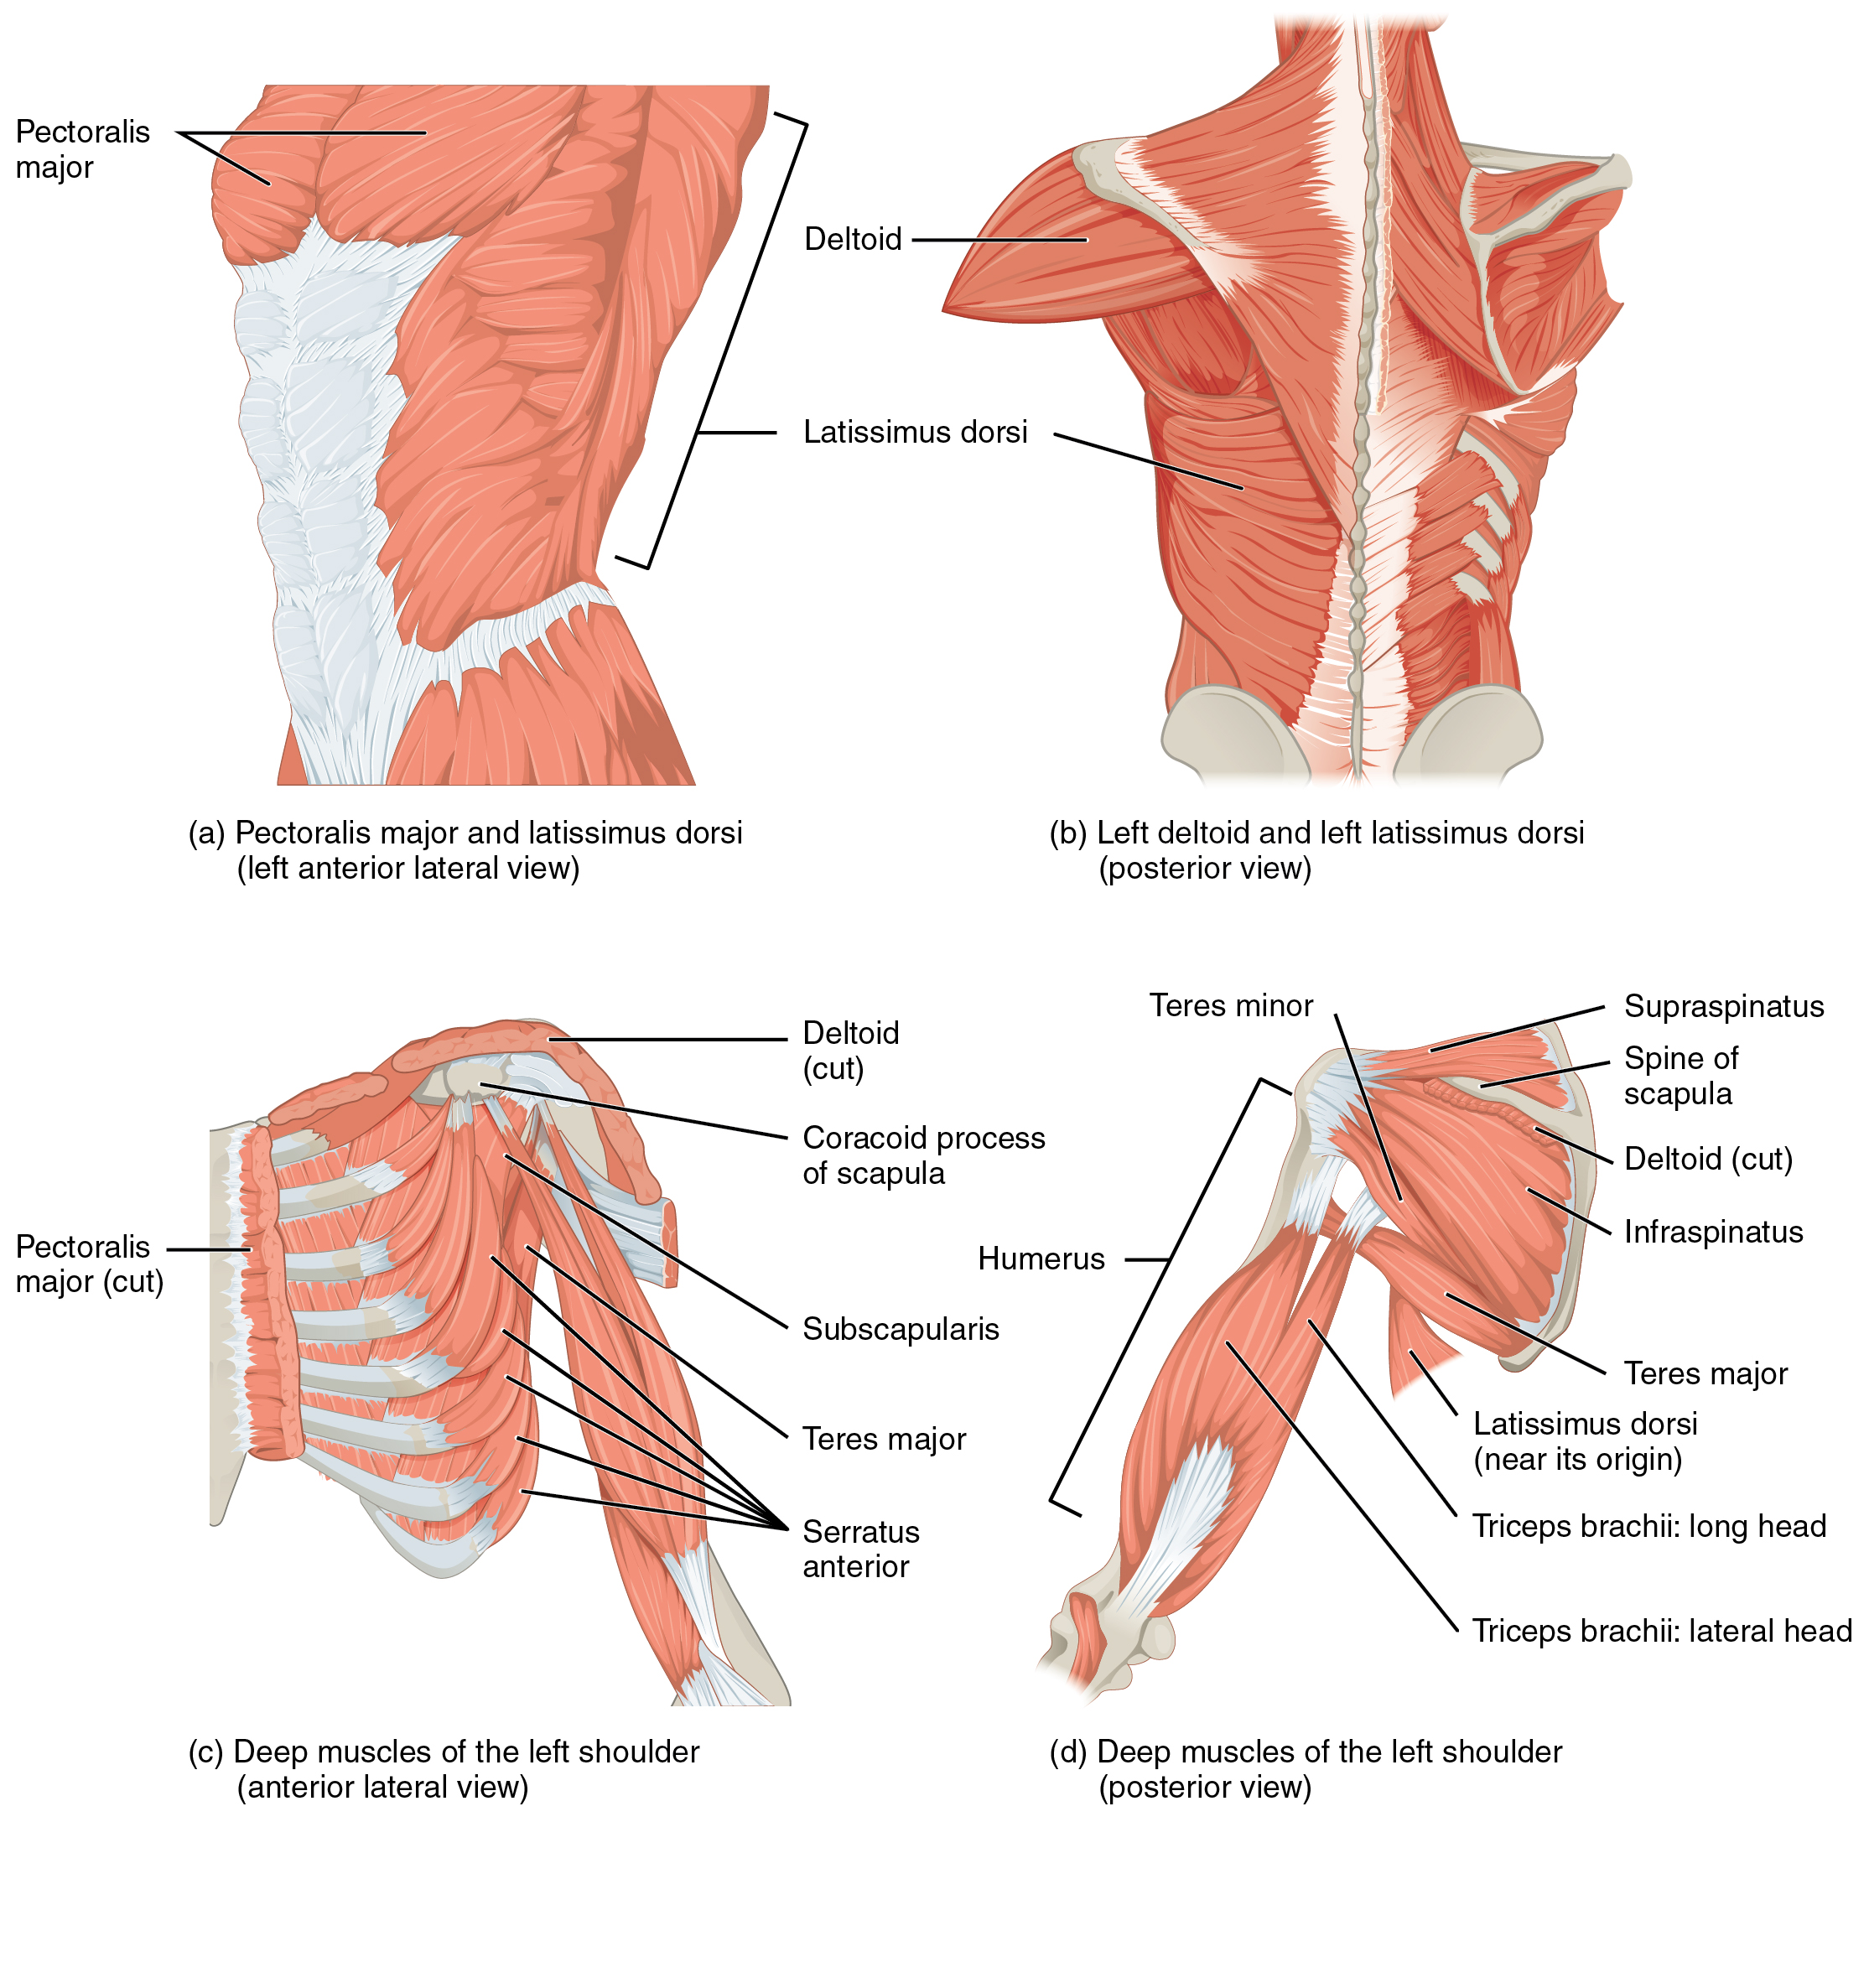 The top left panel shows the lateral view of the pectoral and back muscles. The top right panel shows the posterior view of the right deltoid and the left back muscle. The bottom left panel shows the anterior view of the deep muscles of the left shoulder, and the bottom right panel shows the deep muscles of the left shoulder.